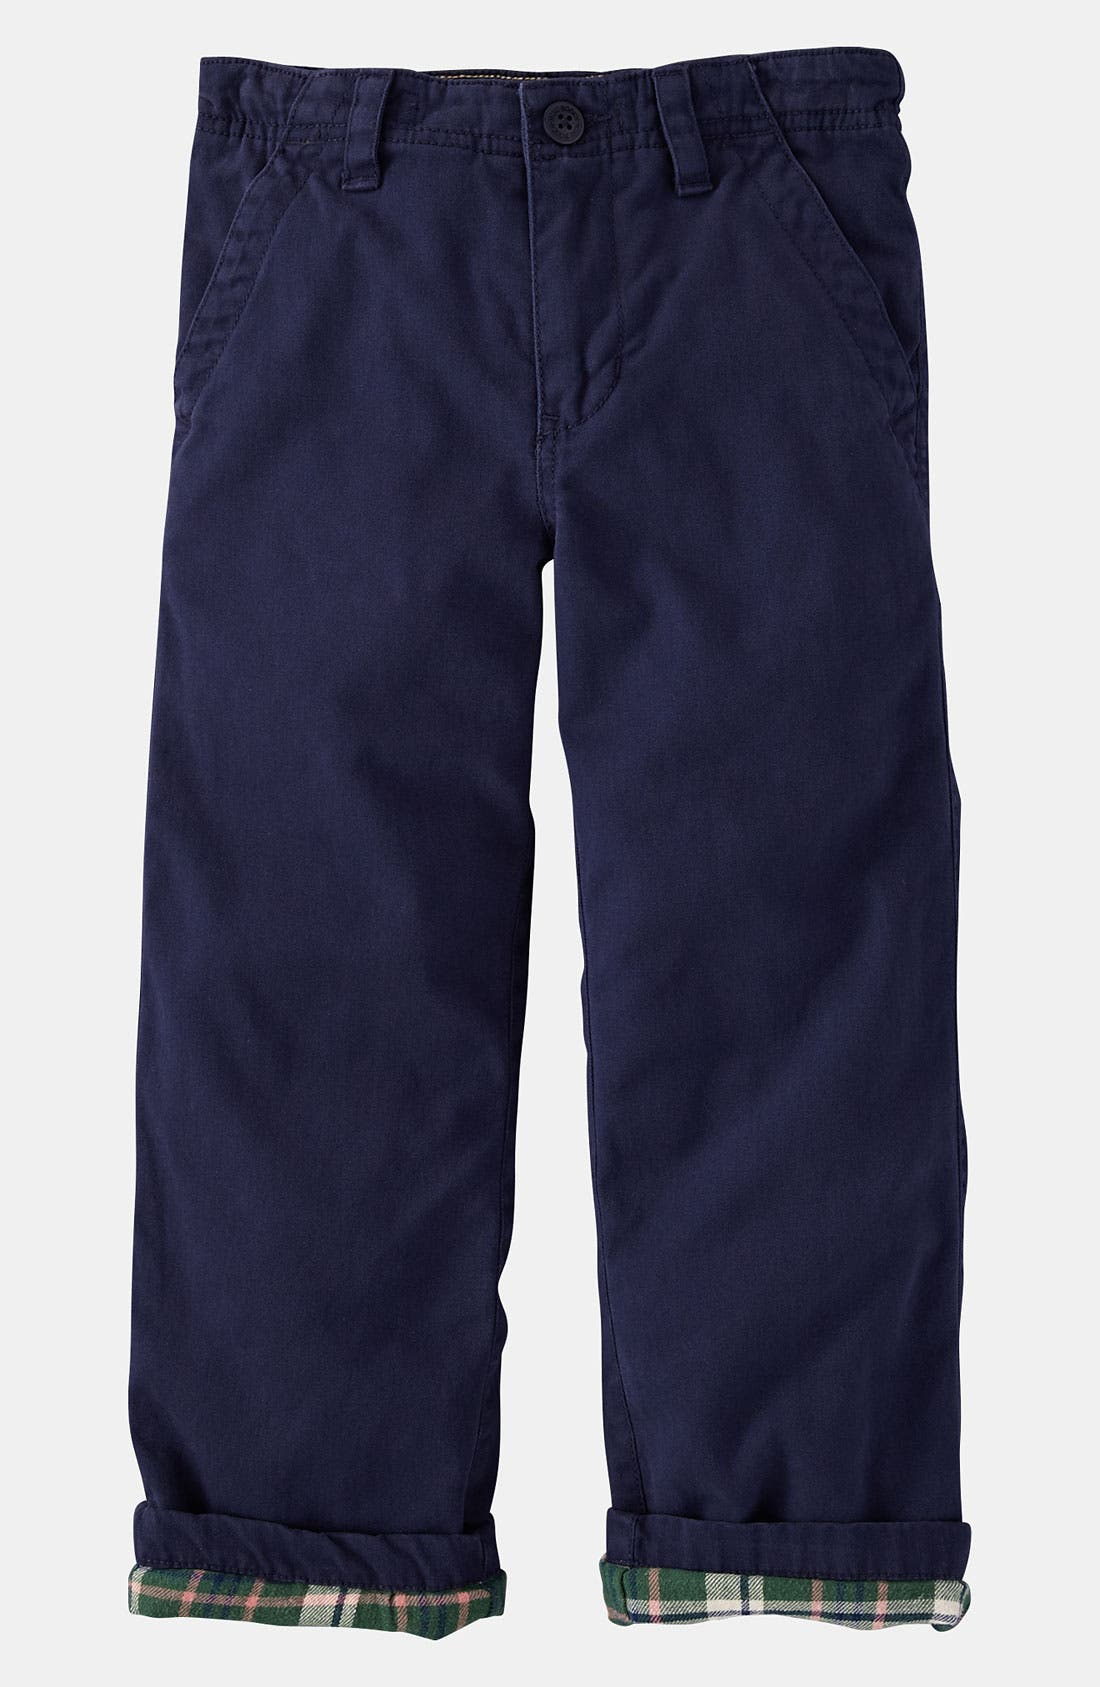 Main Image - Mini Boden Lined Chinos (Toddler)